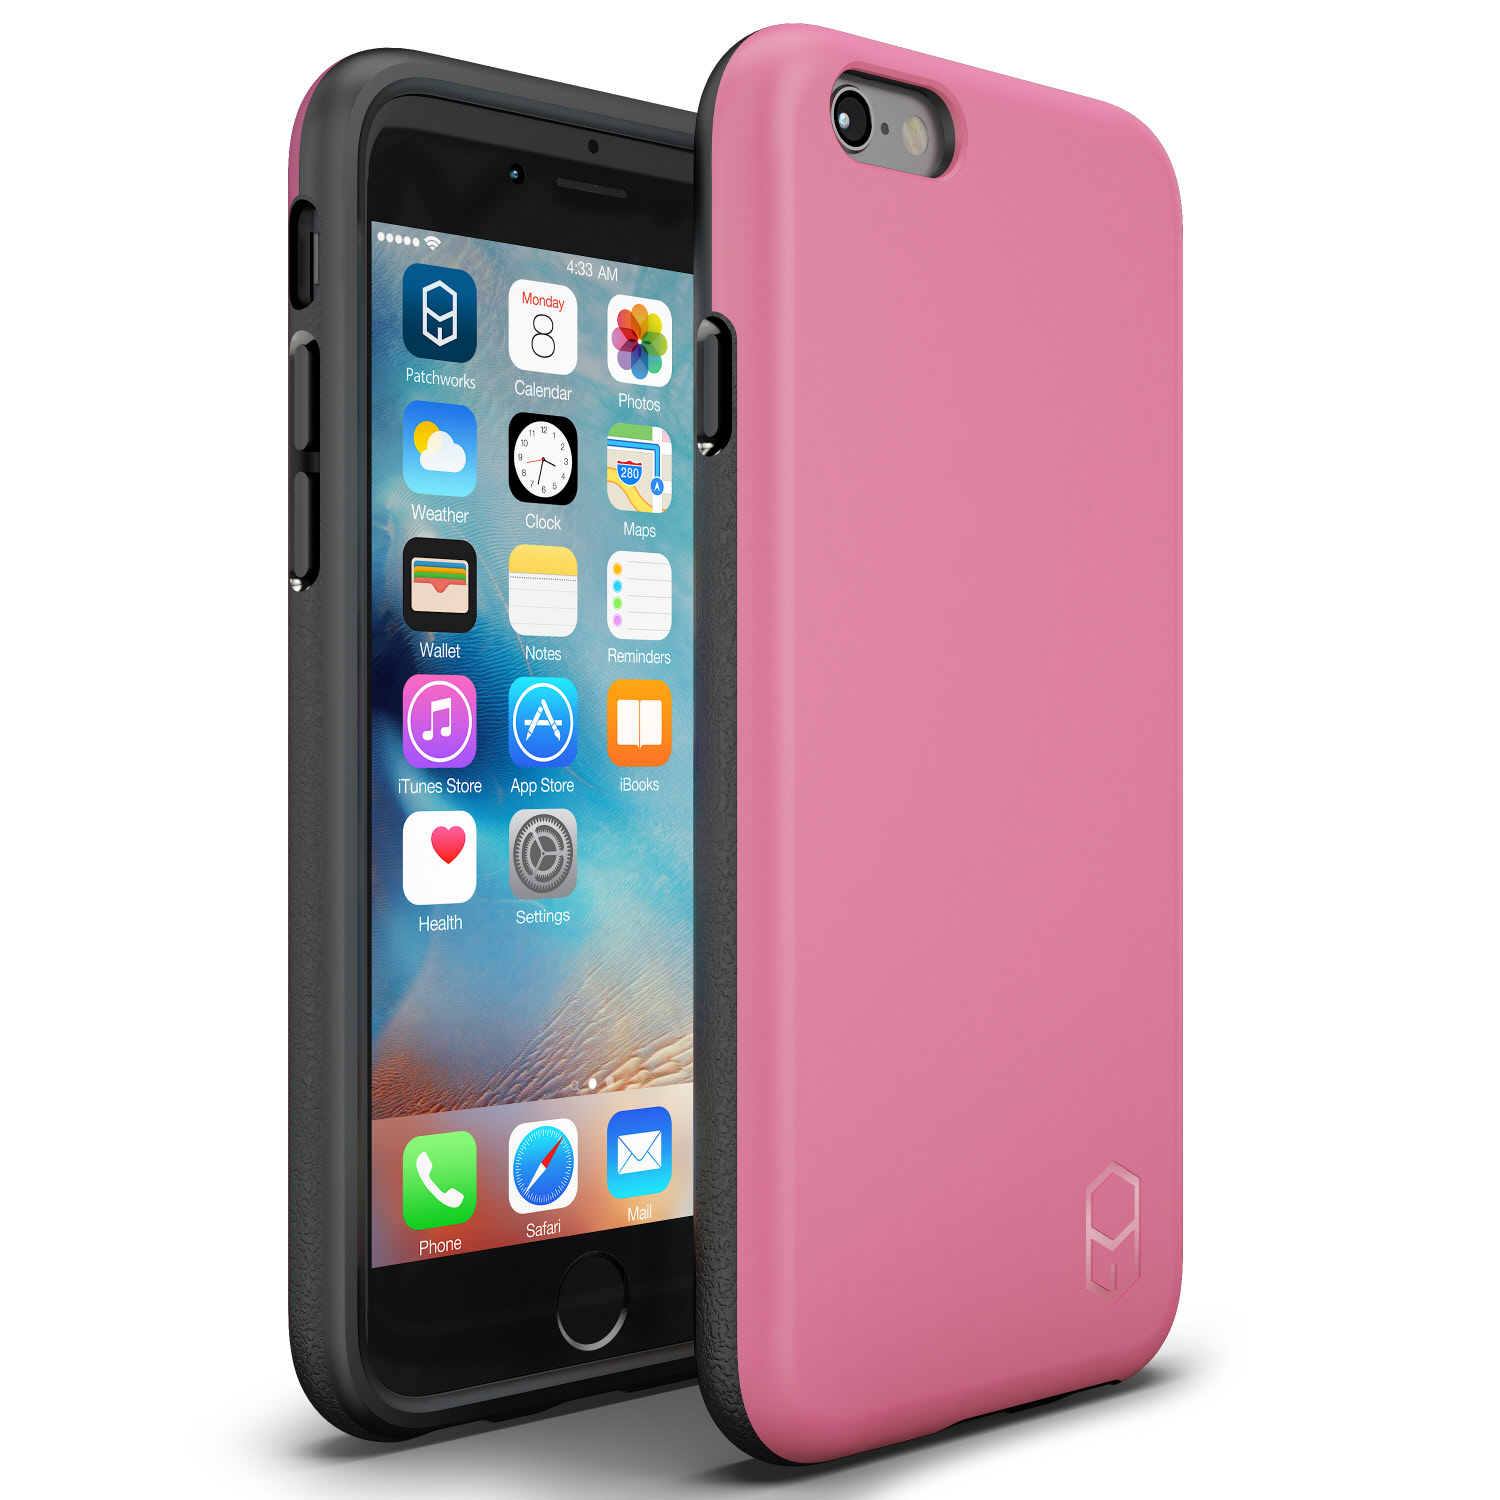 iPhone 6s Plus 6 Plus Case, Patchworks ITG Level Case Rough Side Texture Grip Drop Protection Anti-Fingerprint Matte Surface Slim Fit Solid Case for iPhone 6s Plus 6 Plus - Pink